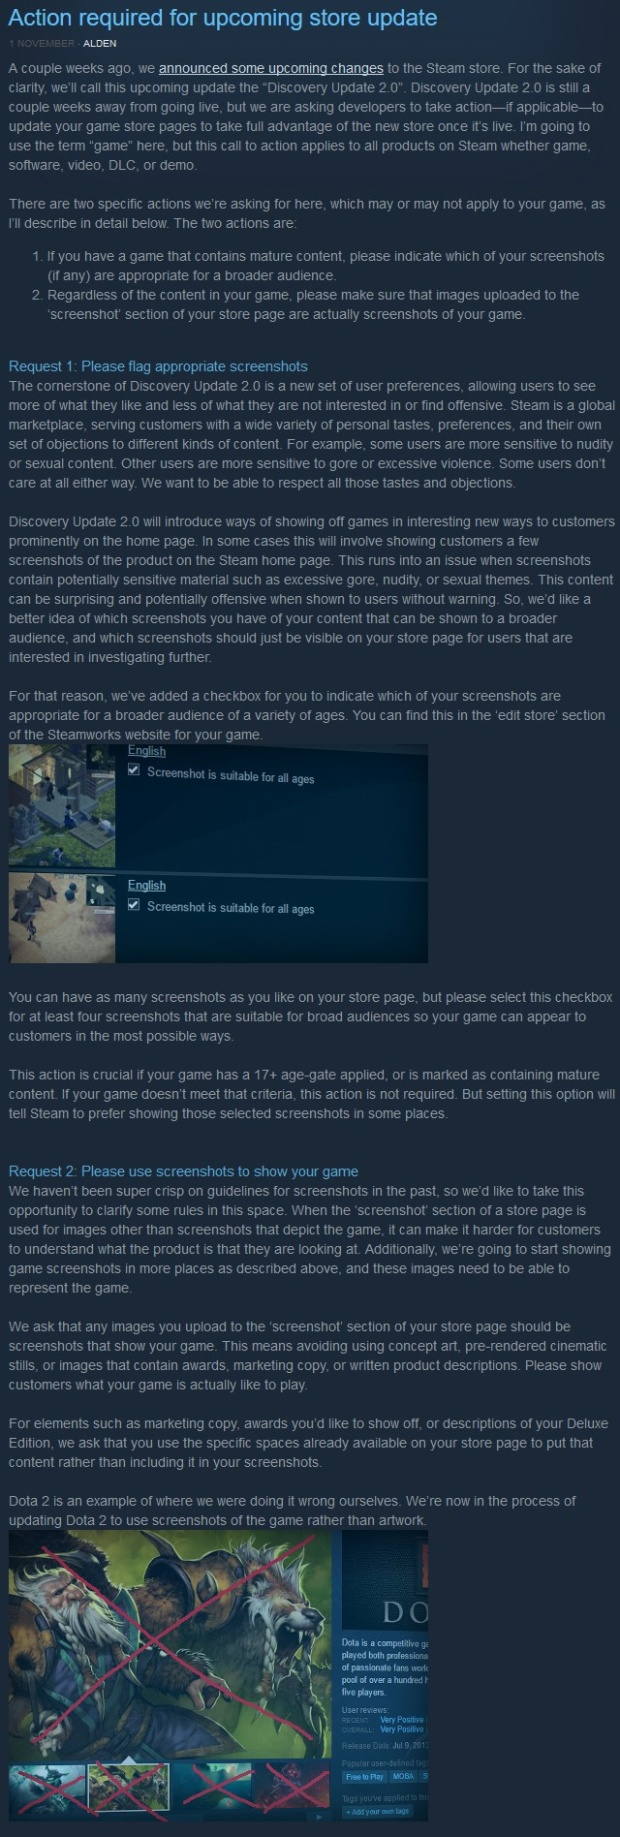 Valve's comments and reasoning behind the upcoming Steam Store screenshots update